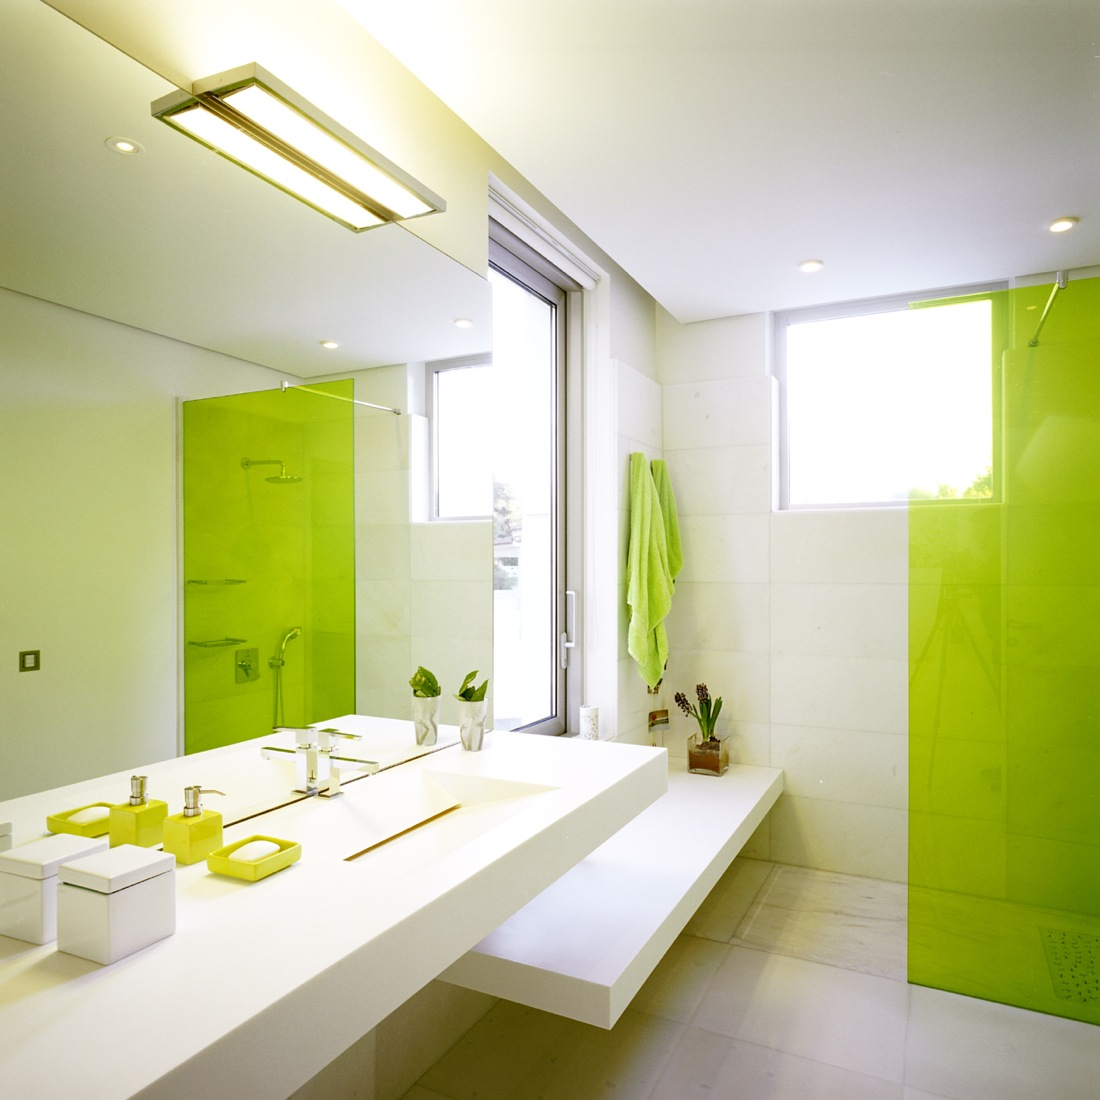 Minimalist bathroom designs home designs project Interior design for apartment bathroom